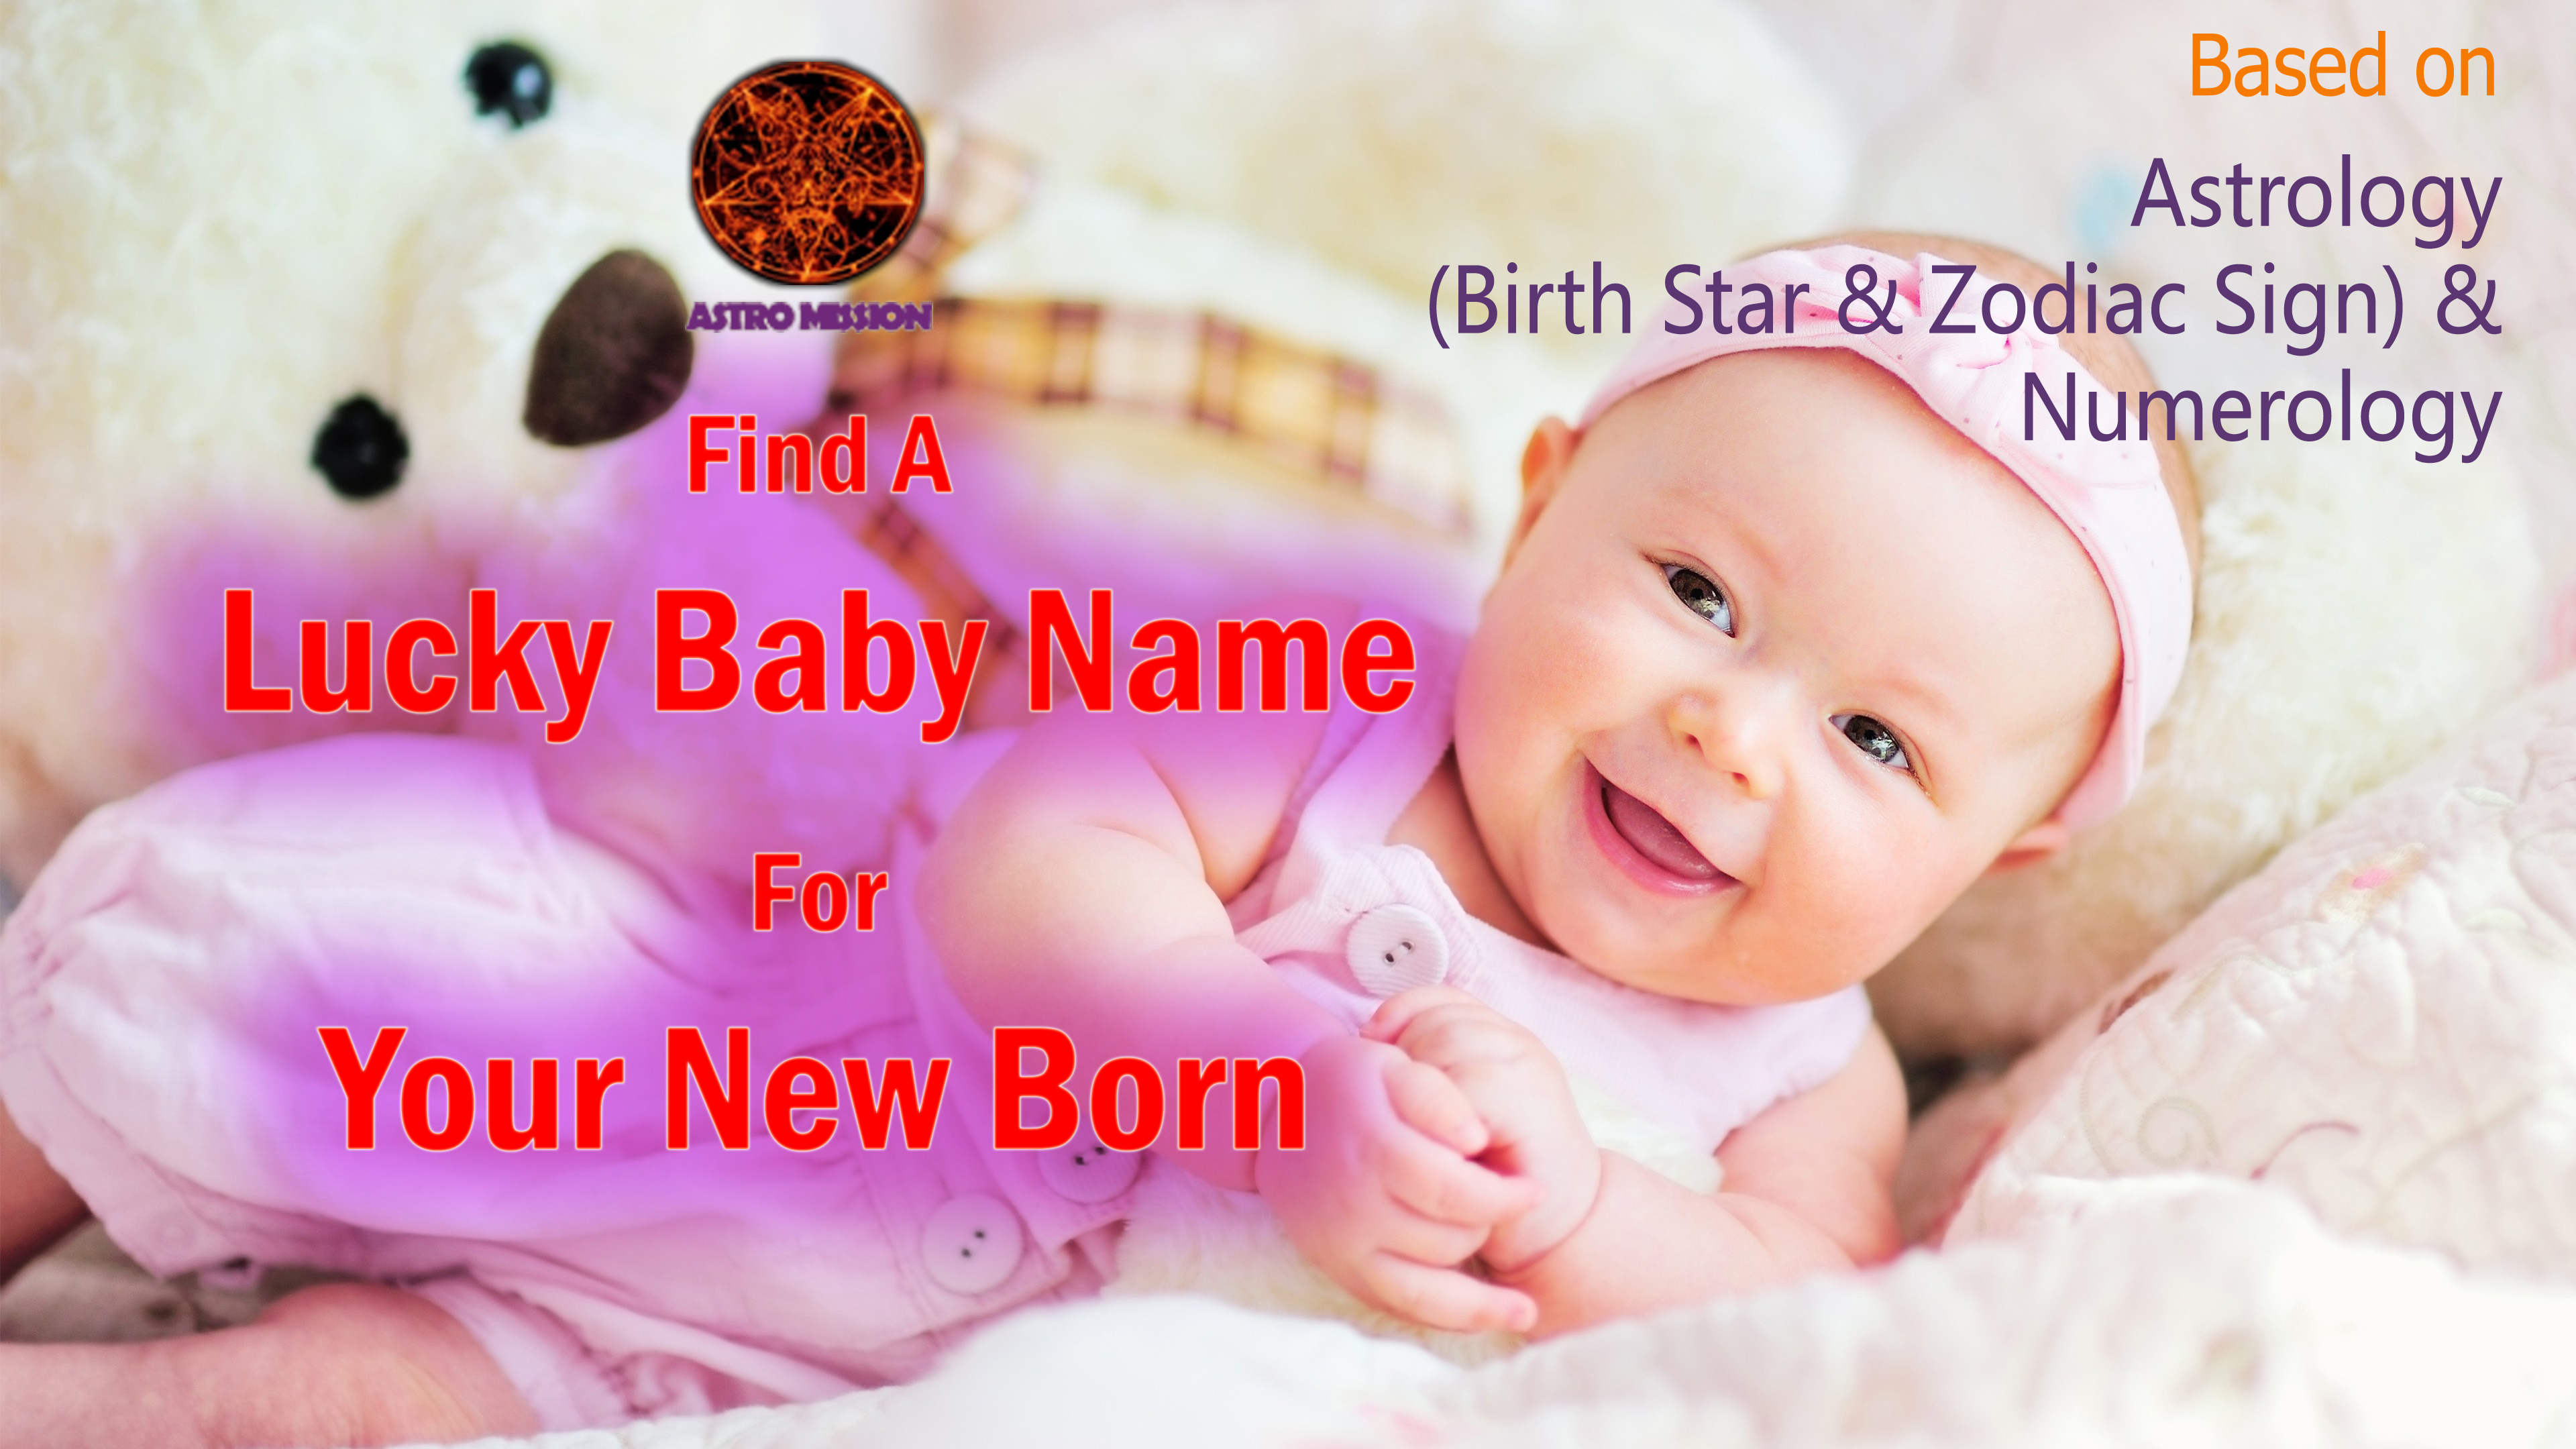 Find A Lucky Baby Name For Your New Born